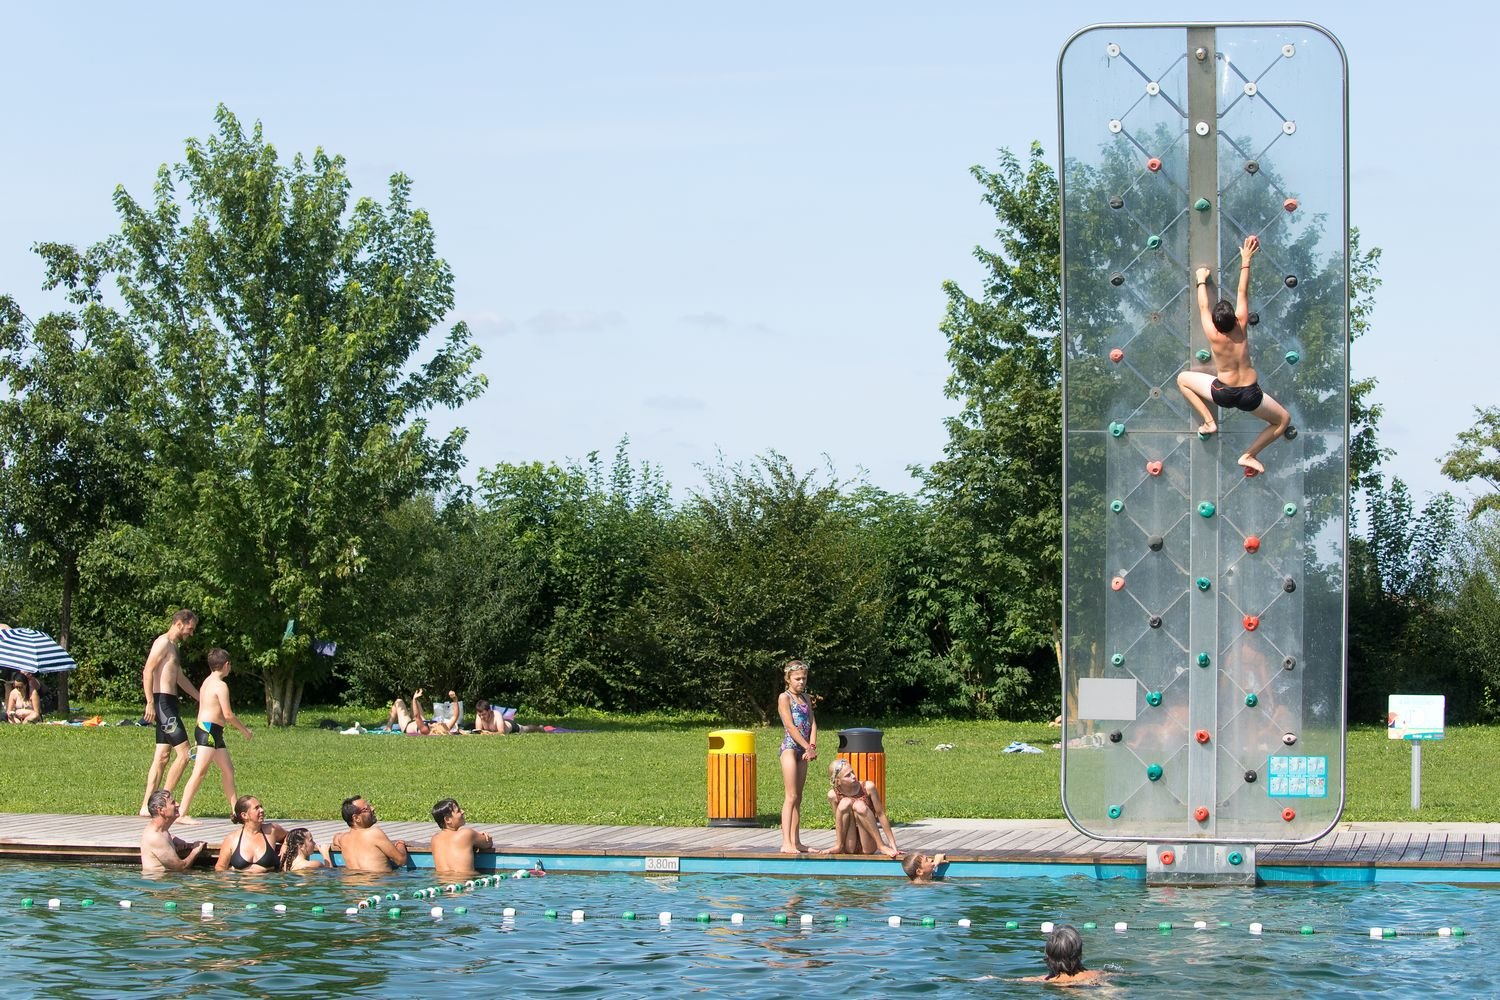 TOURISM: All aspects of swimming in Beaune Côté Plage